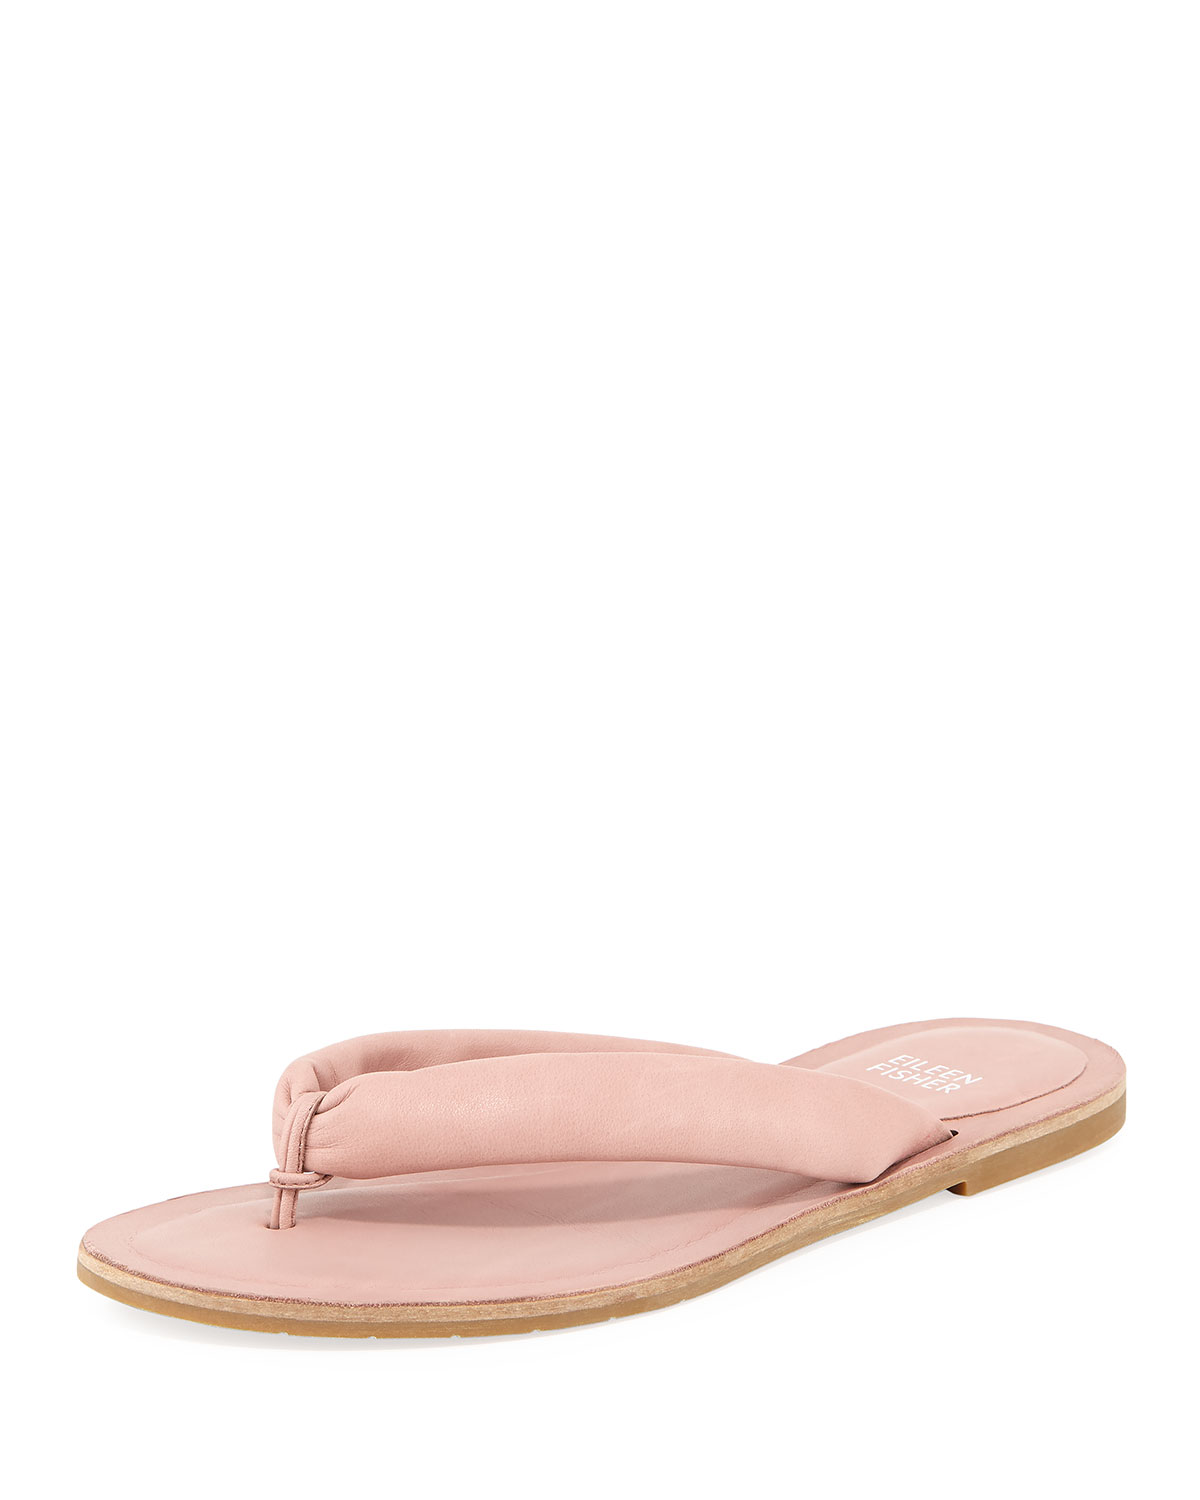 08270cffe33 Eileen Fisher Flue Flat Washed Leather Thong Sandal